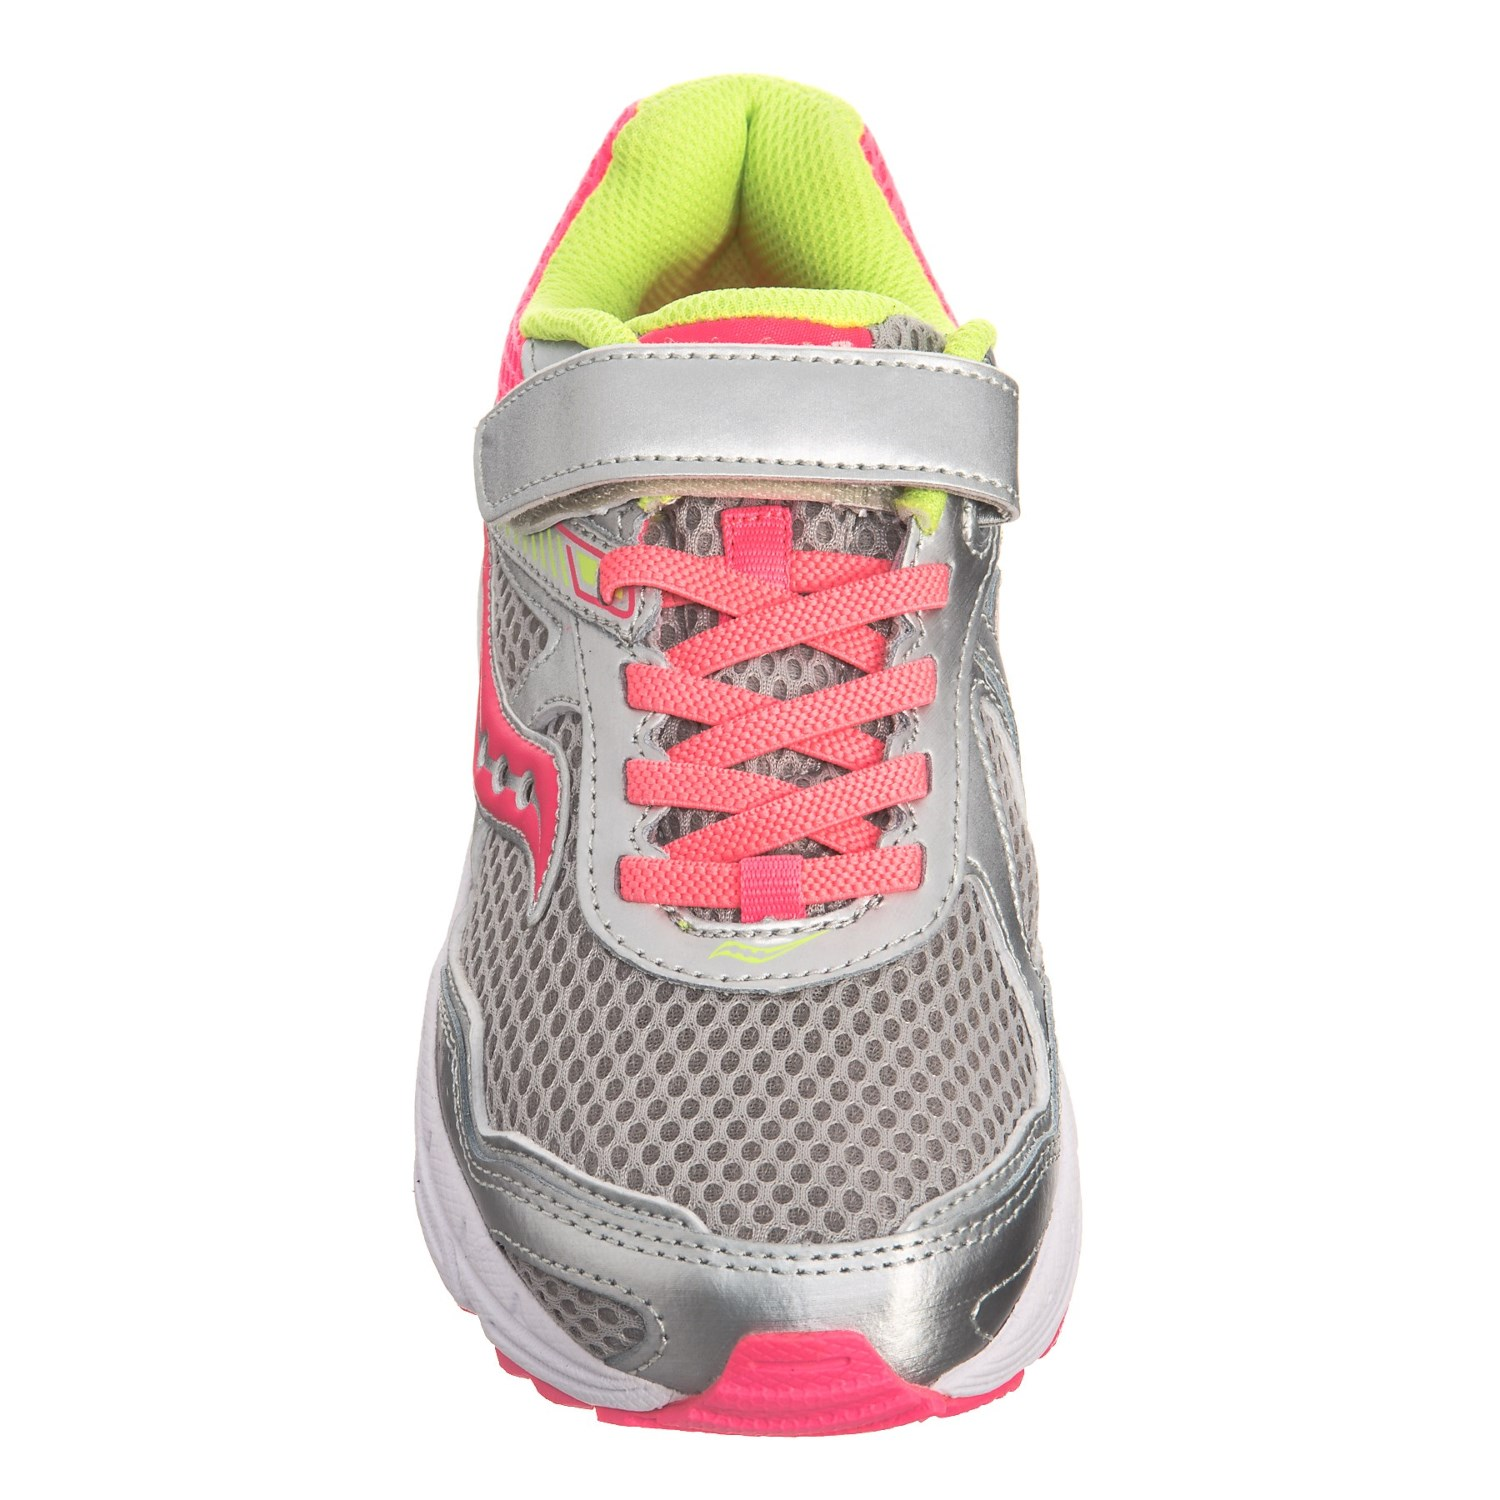 2056e680a9a6 Saucony Cohesion 10 A C Running Shoes (For Little Girls) - Save 55%